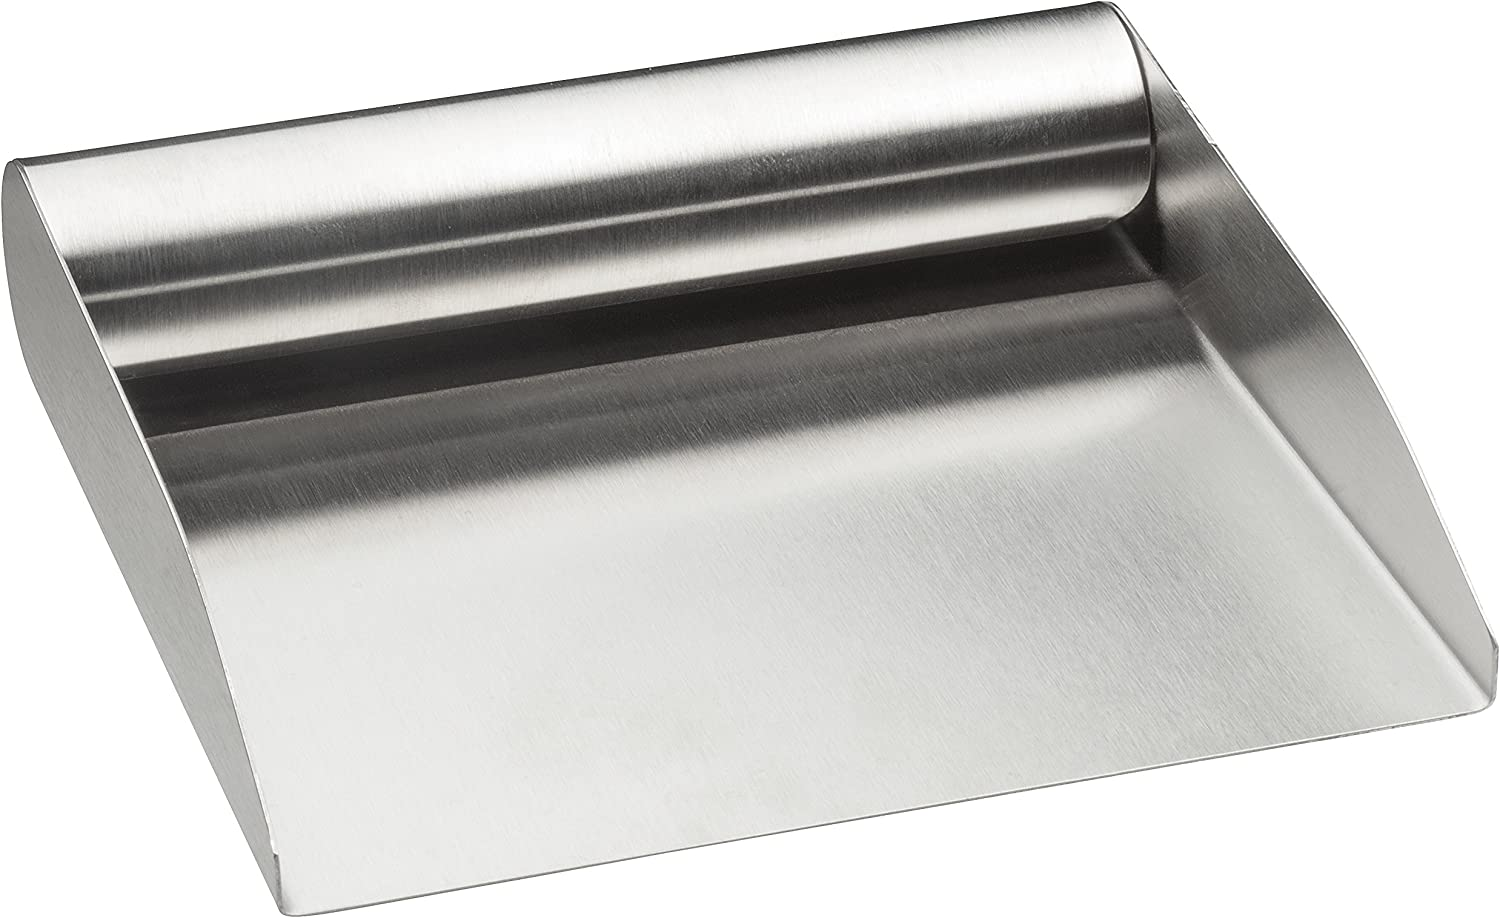 HIC Harold Ranking TOP16 Max 65% OFF Import 18 8 Steel Stainless 6-Inch Food Scoop